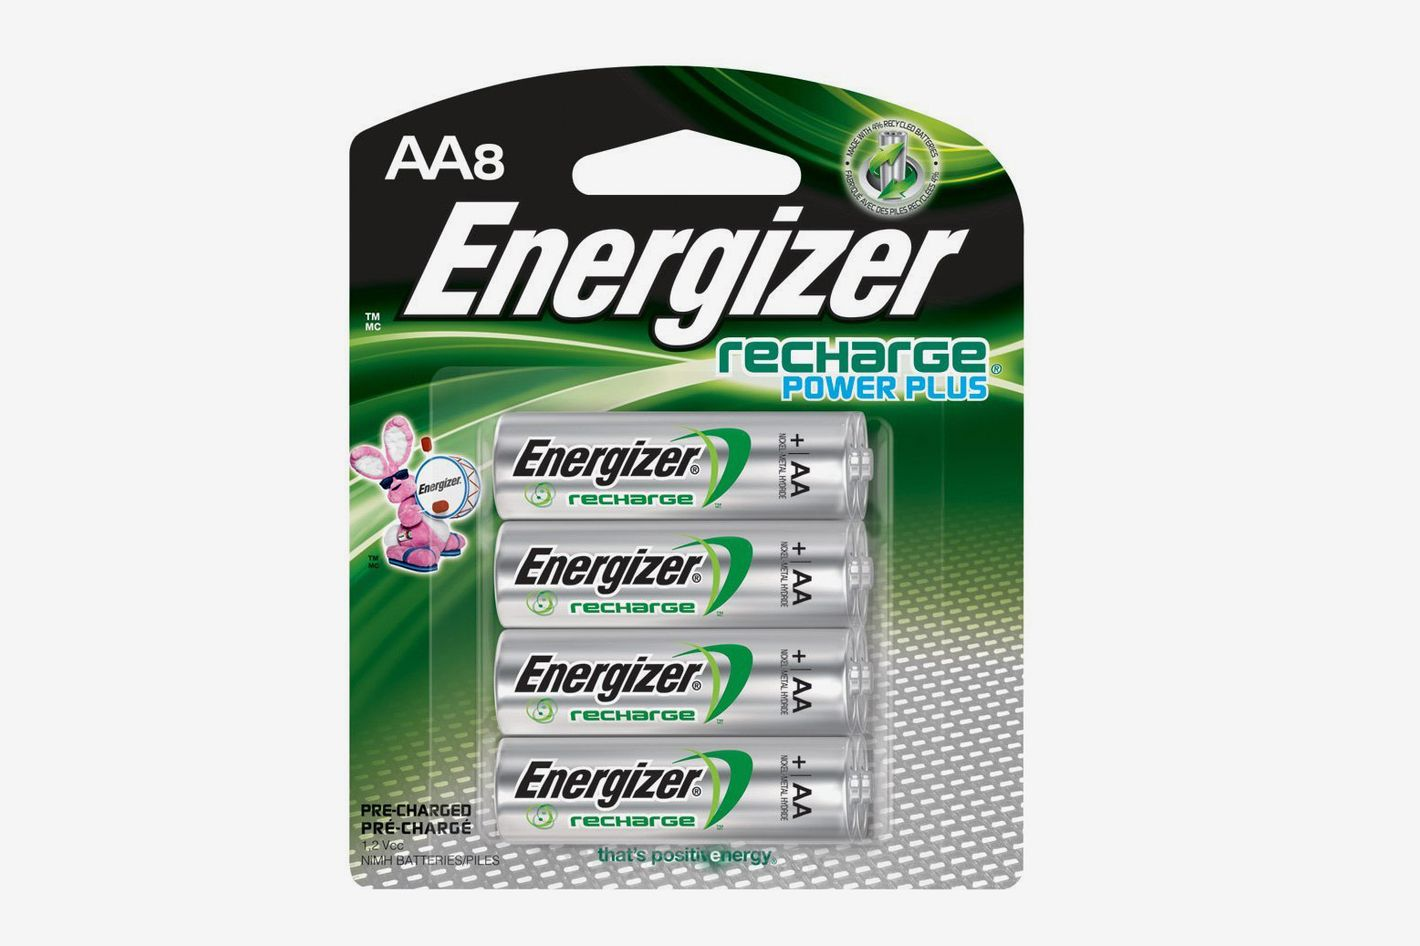 Energizer Rechargeable AA Batteries Pre-Charged (8-Count)